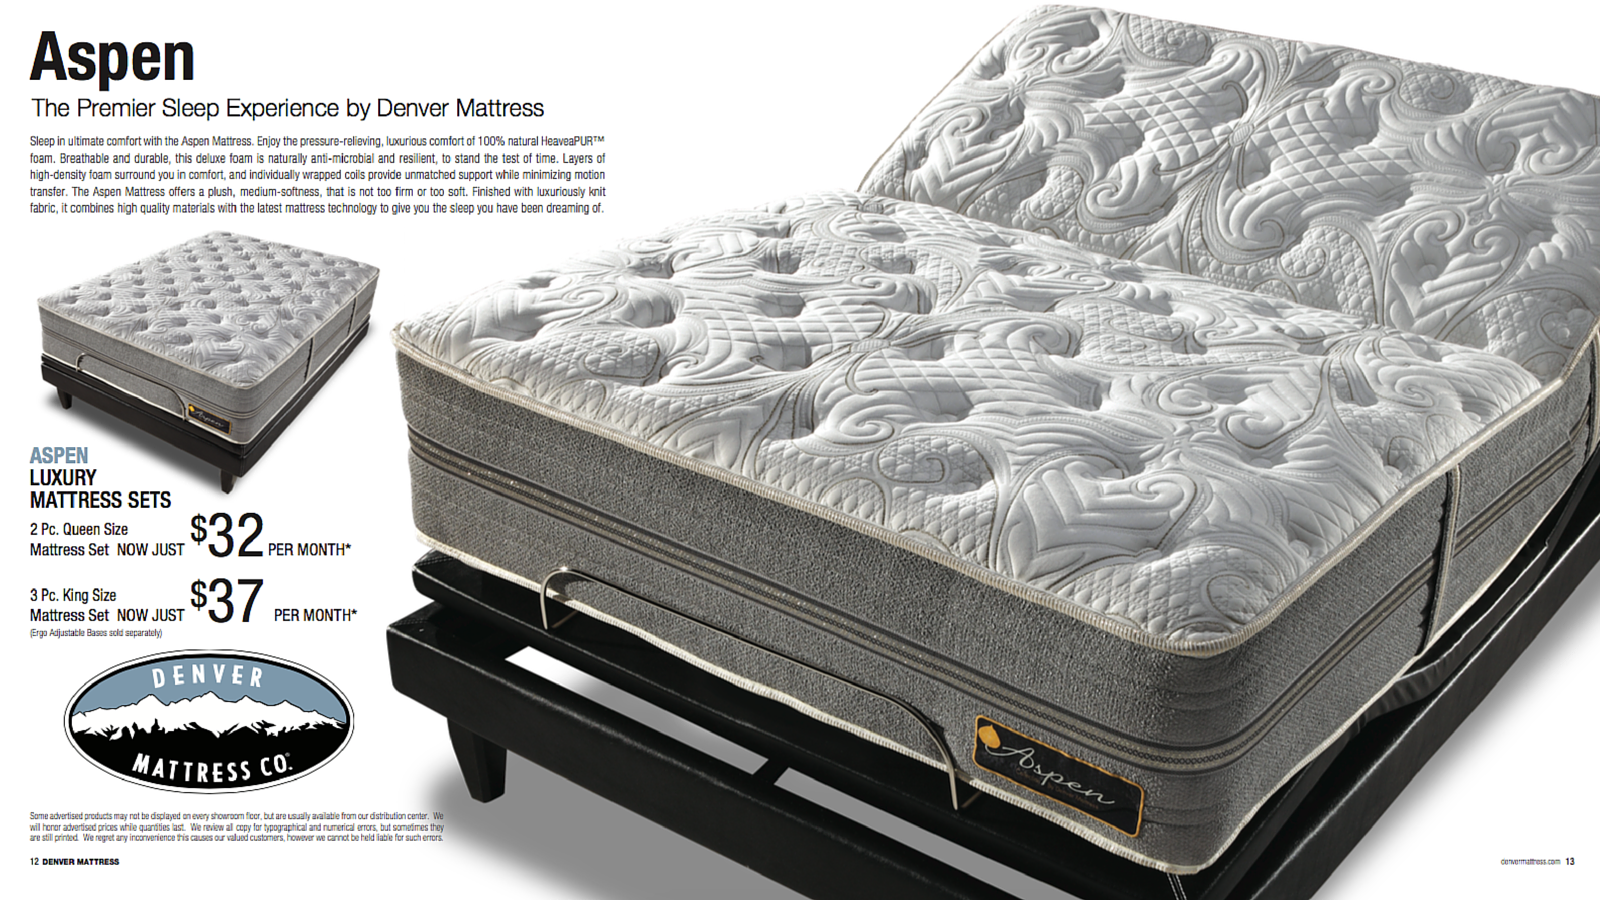 Sleep In Ultimate Comfort With The Aspen Luxury Mattress From